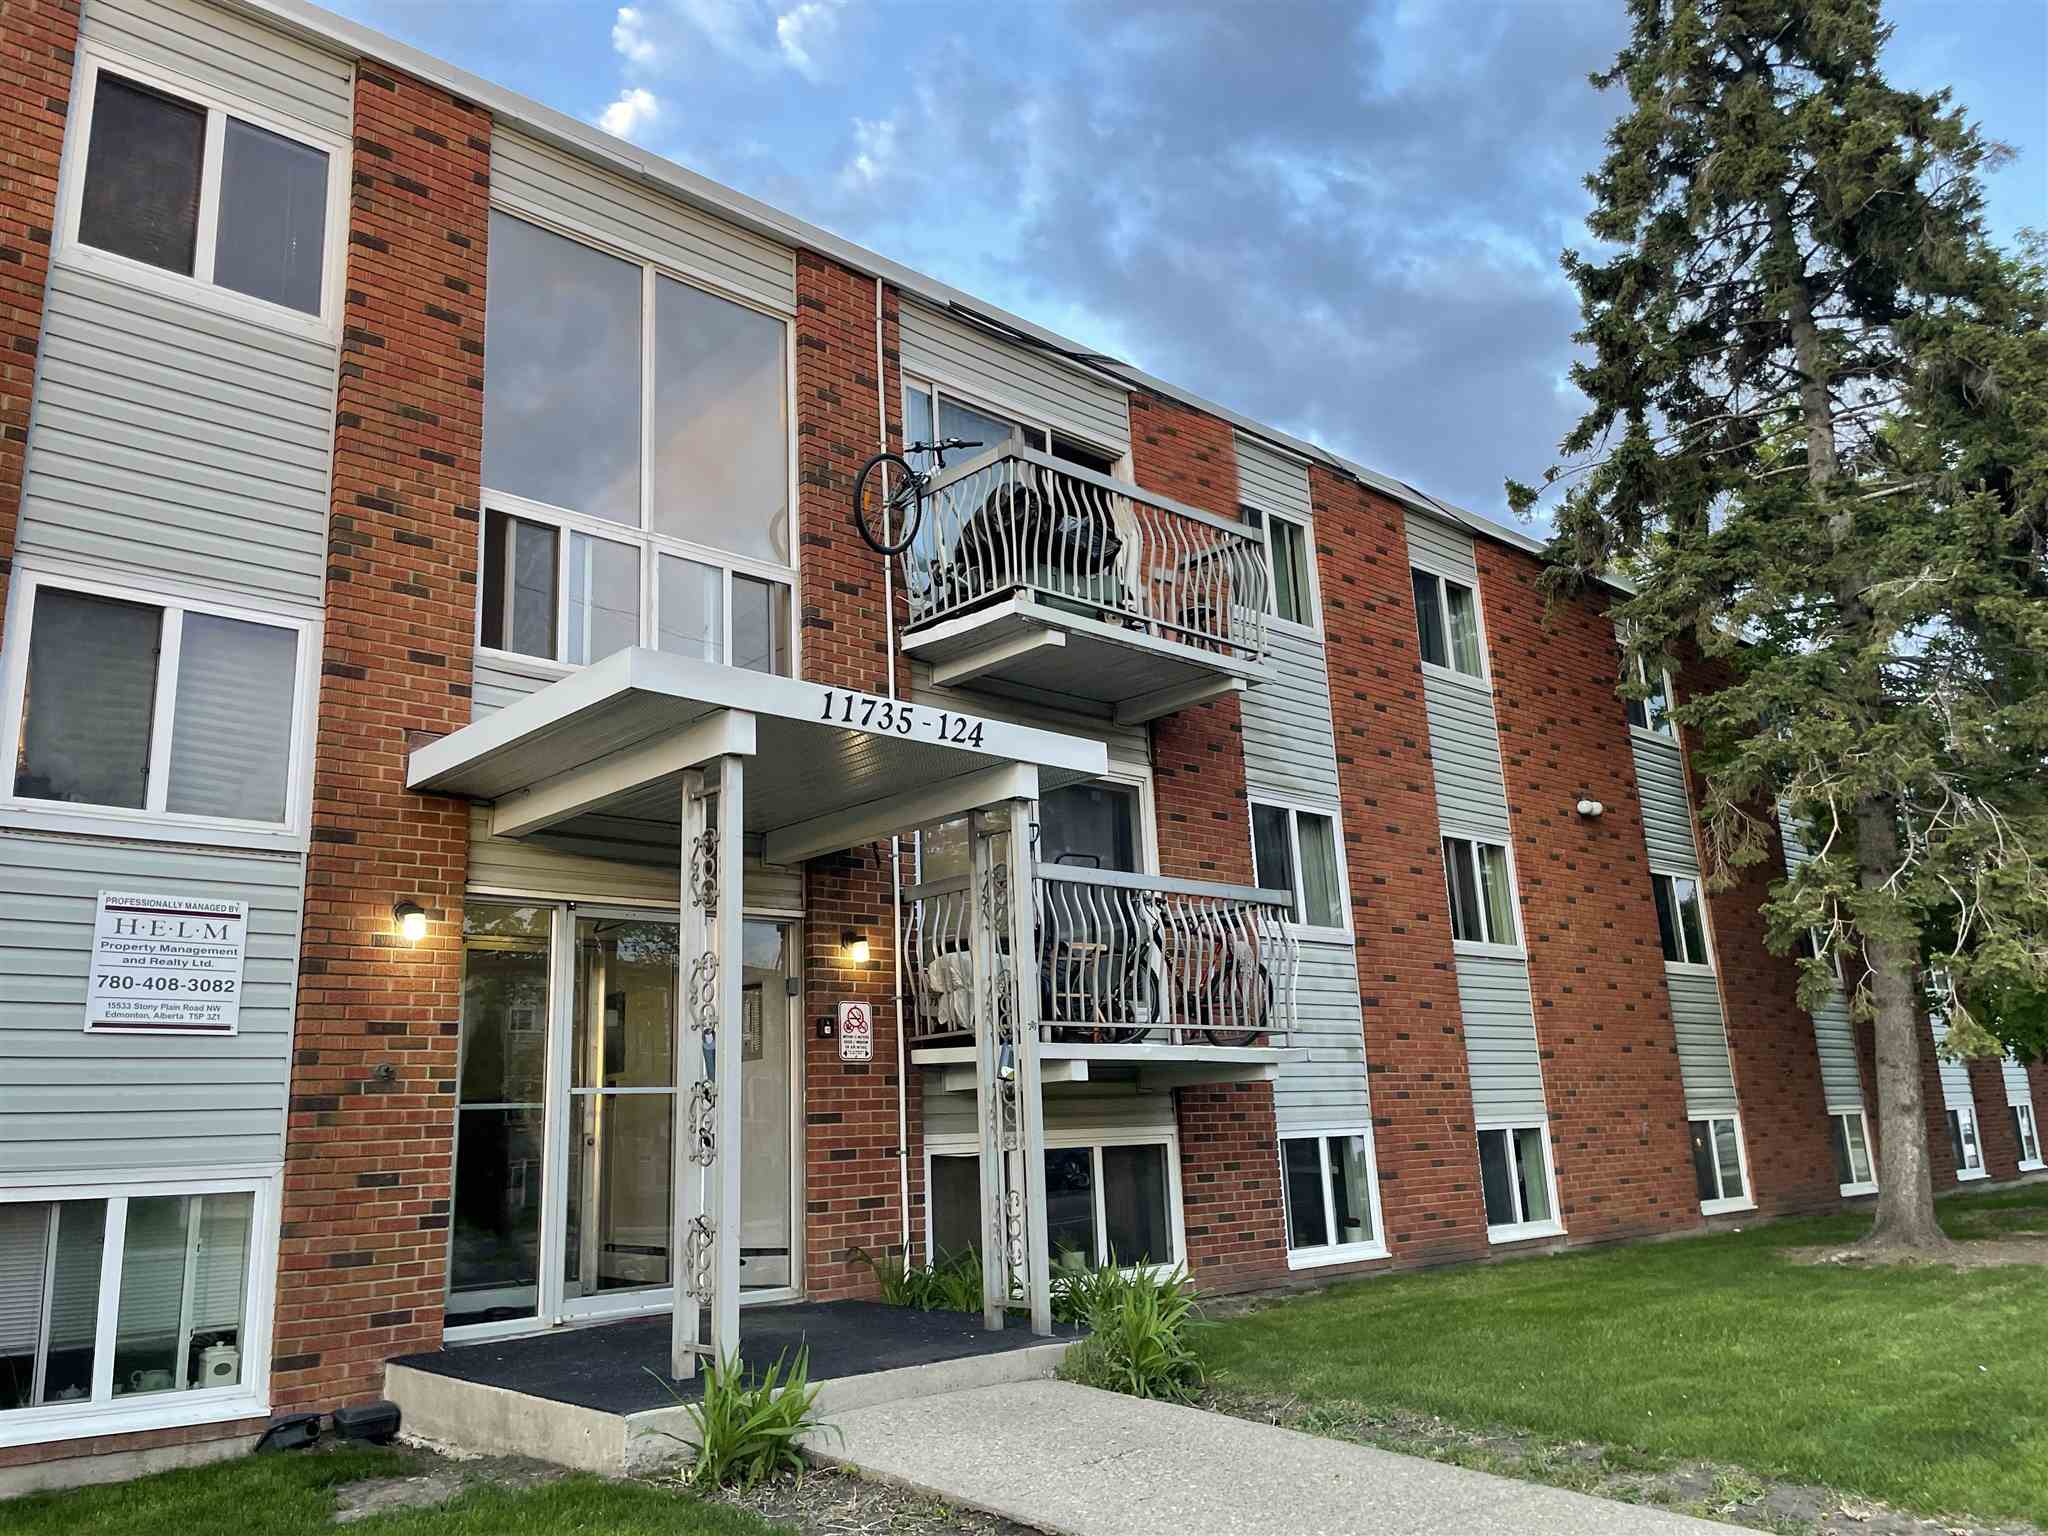 Investors & buyers alert! Own this affordable condo situated in the convenient location of Inglewood. This Open Concept has a bright living room flooded with natural light from the north facing balcony & Spacious Kitchen adjacent to the dining area. The unit has laminate floorings through out with a good-sized bedroom & 4pc bathroom. Living is easy with walking distance to Downtown, 124 Street District, Inglewood School/Playground, a variety of coffee shops + restaurants, bus stops, & a 5 minute drive to Yellowhead Trail & Kingsway Mall/Royal Alex LRT station. Don't miss out this great deal!